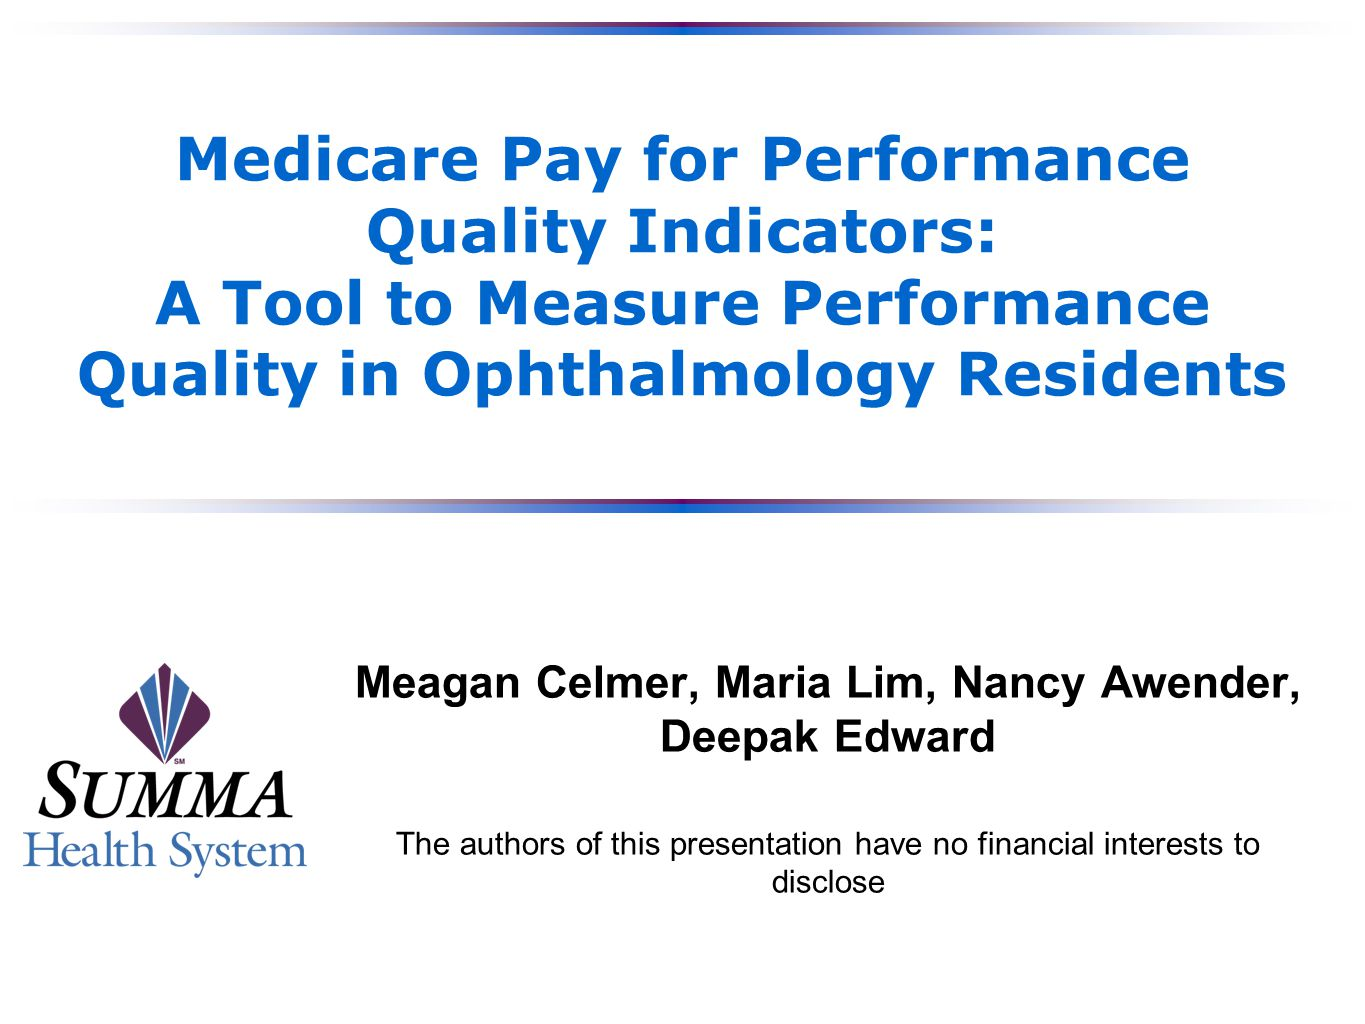 Medicare Pay for Performance Quality Indicators: A Tool to Measure Performance Quality in Ophthalmology Residents Meagan Celmer, Maria Lim, Nancy Awender, Deepak Edward The authors of this presentation have no financial interests to disclose